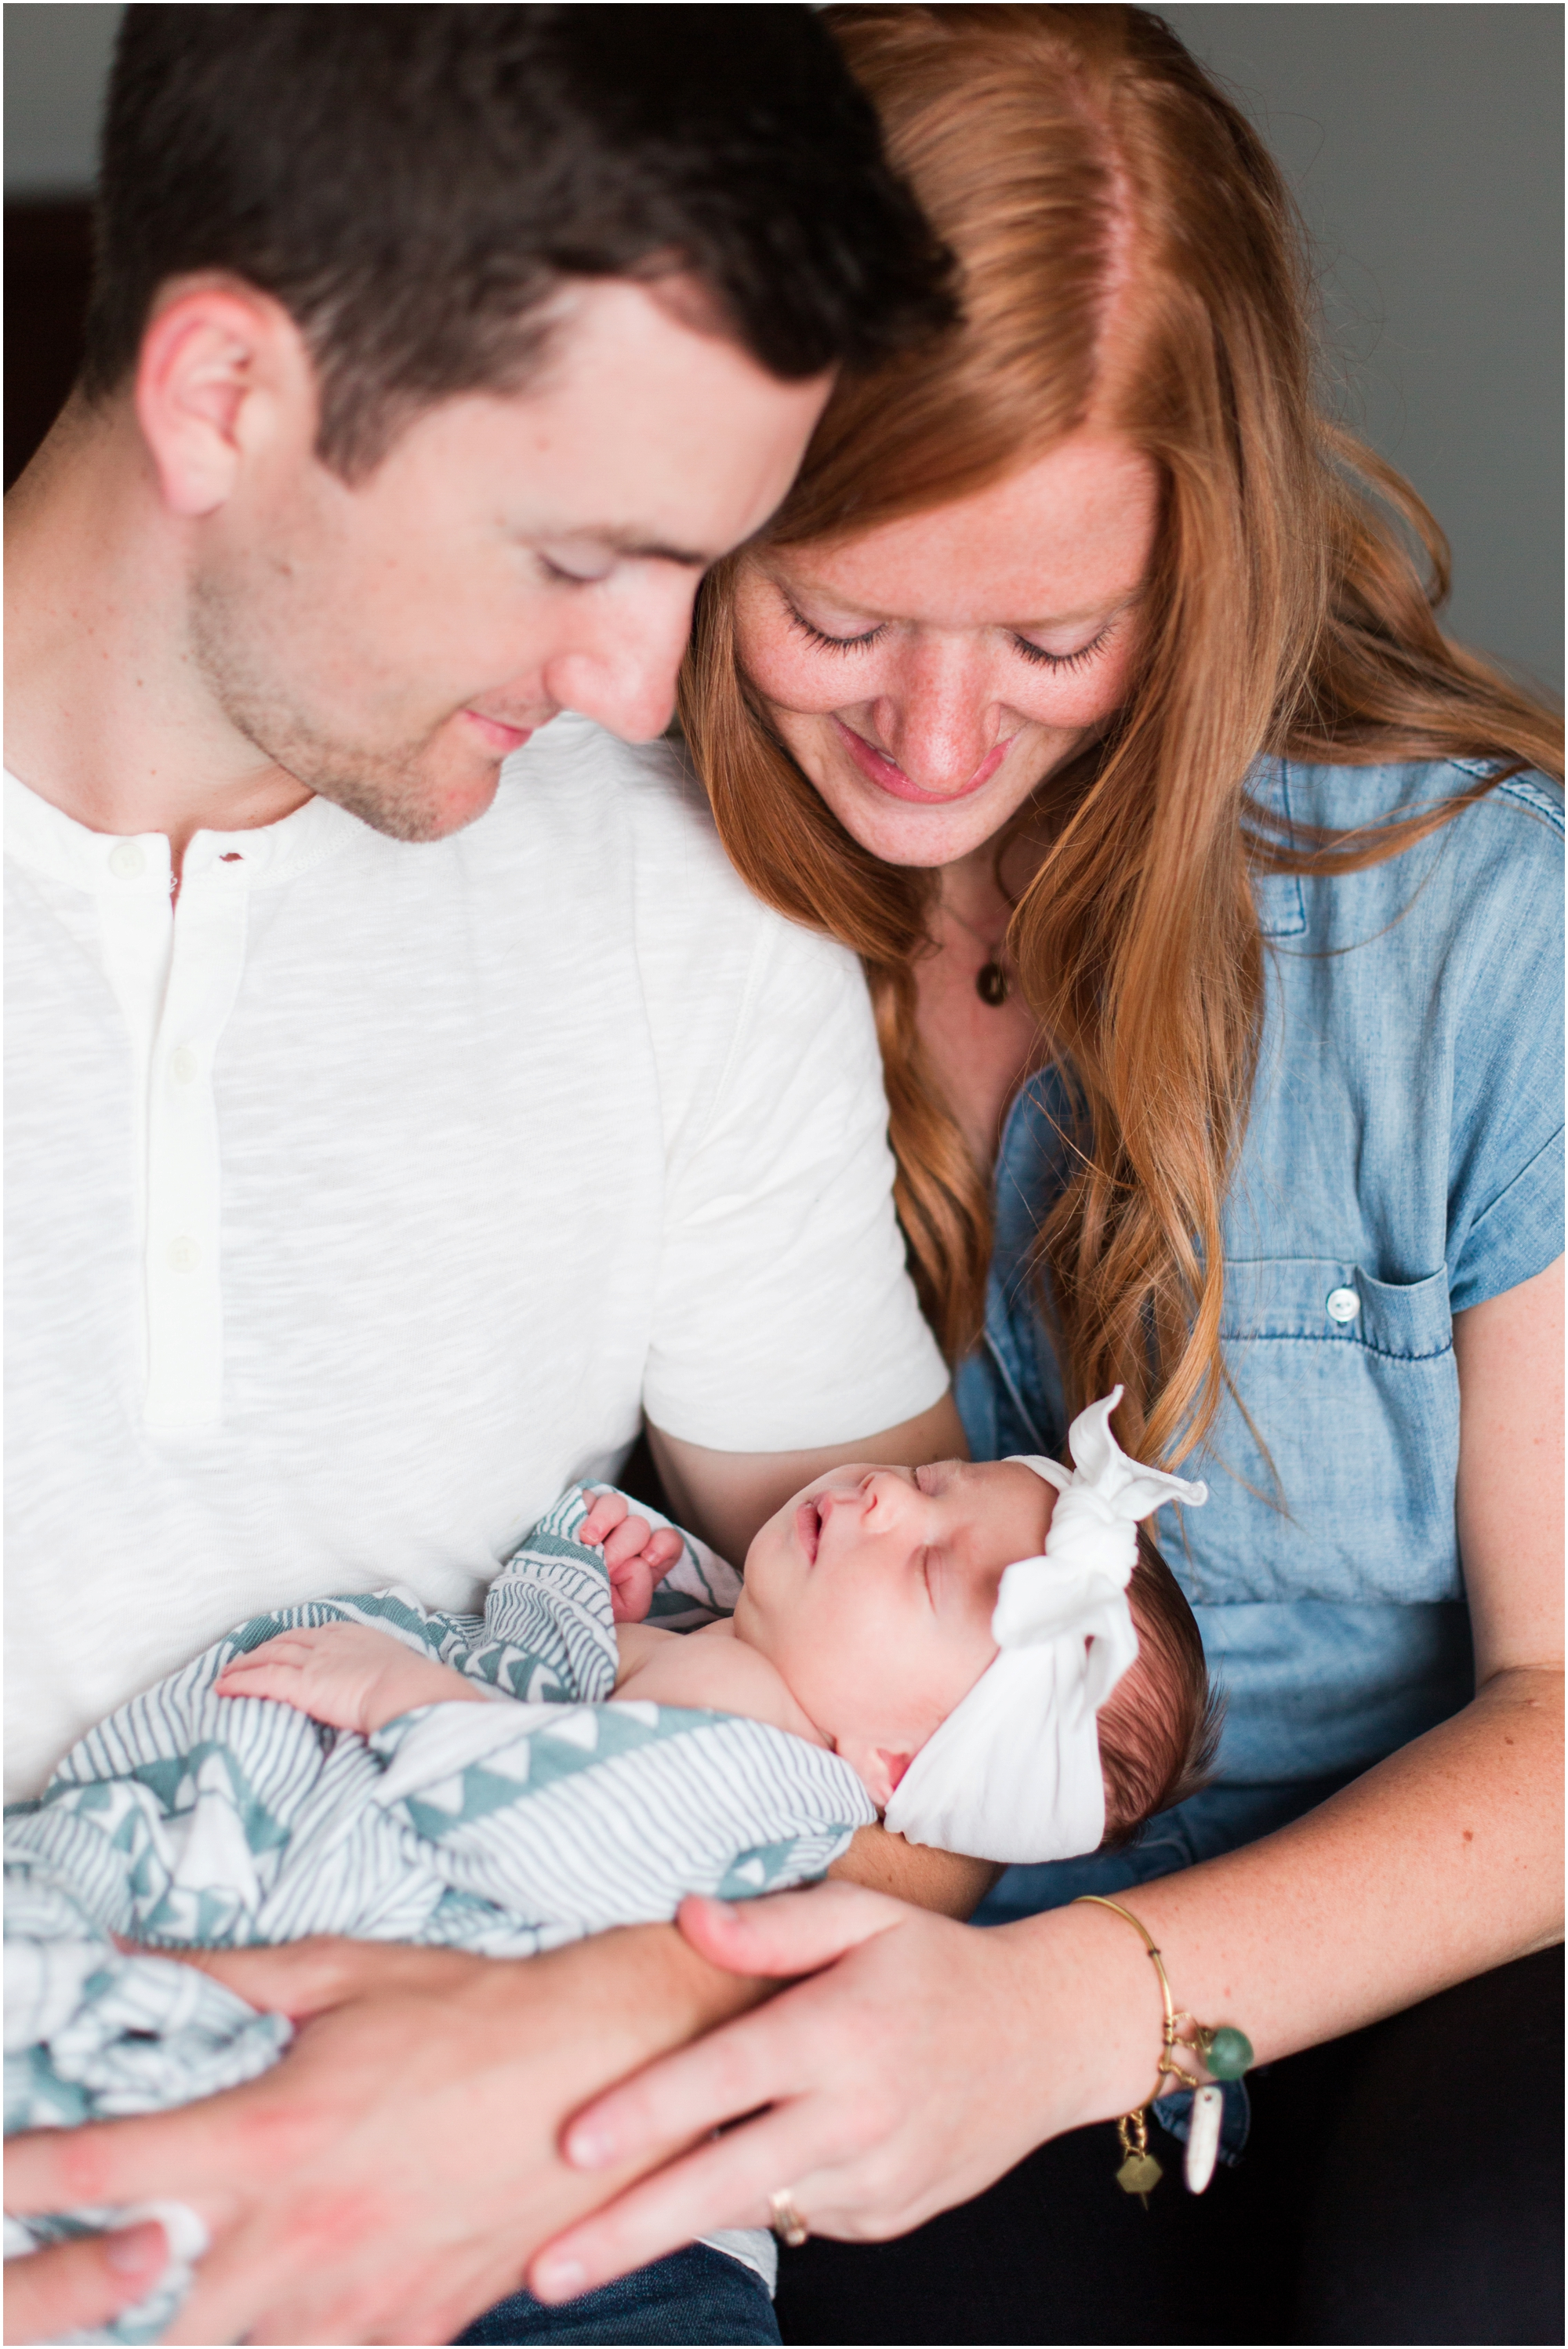 Seattle lifestyle newborn photos by Briana Calderon Photography based in the Greater Seattle & Tacoma, WA_0710.jpg